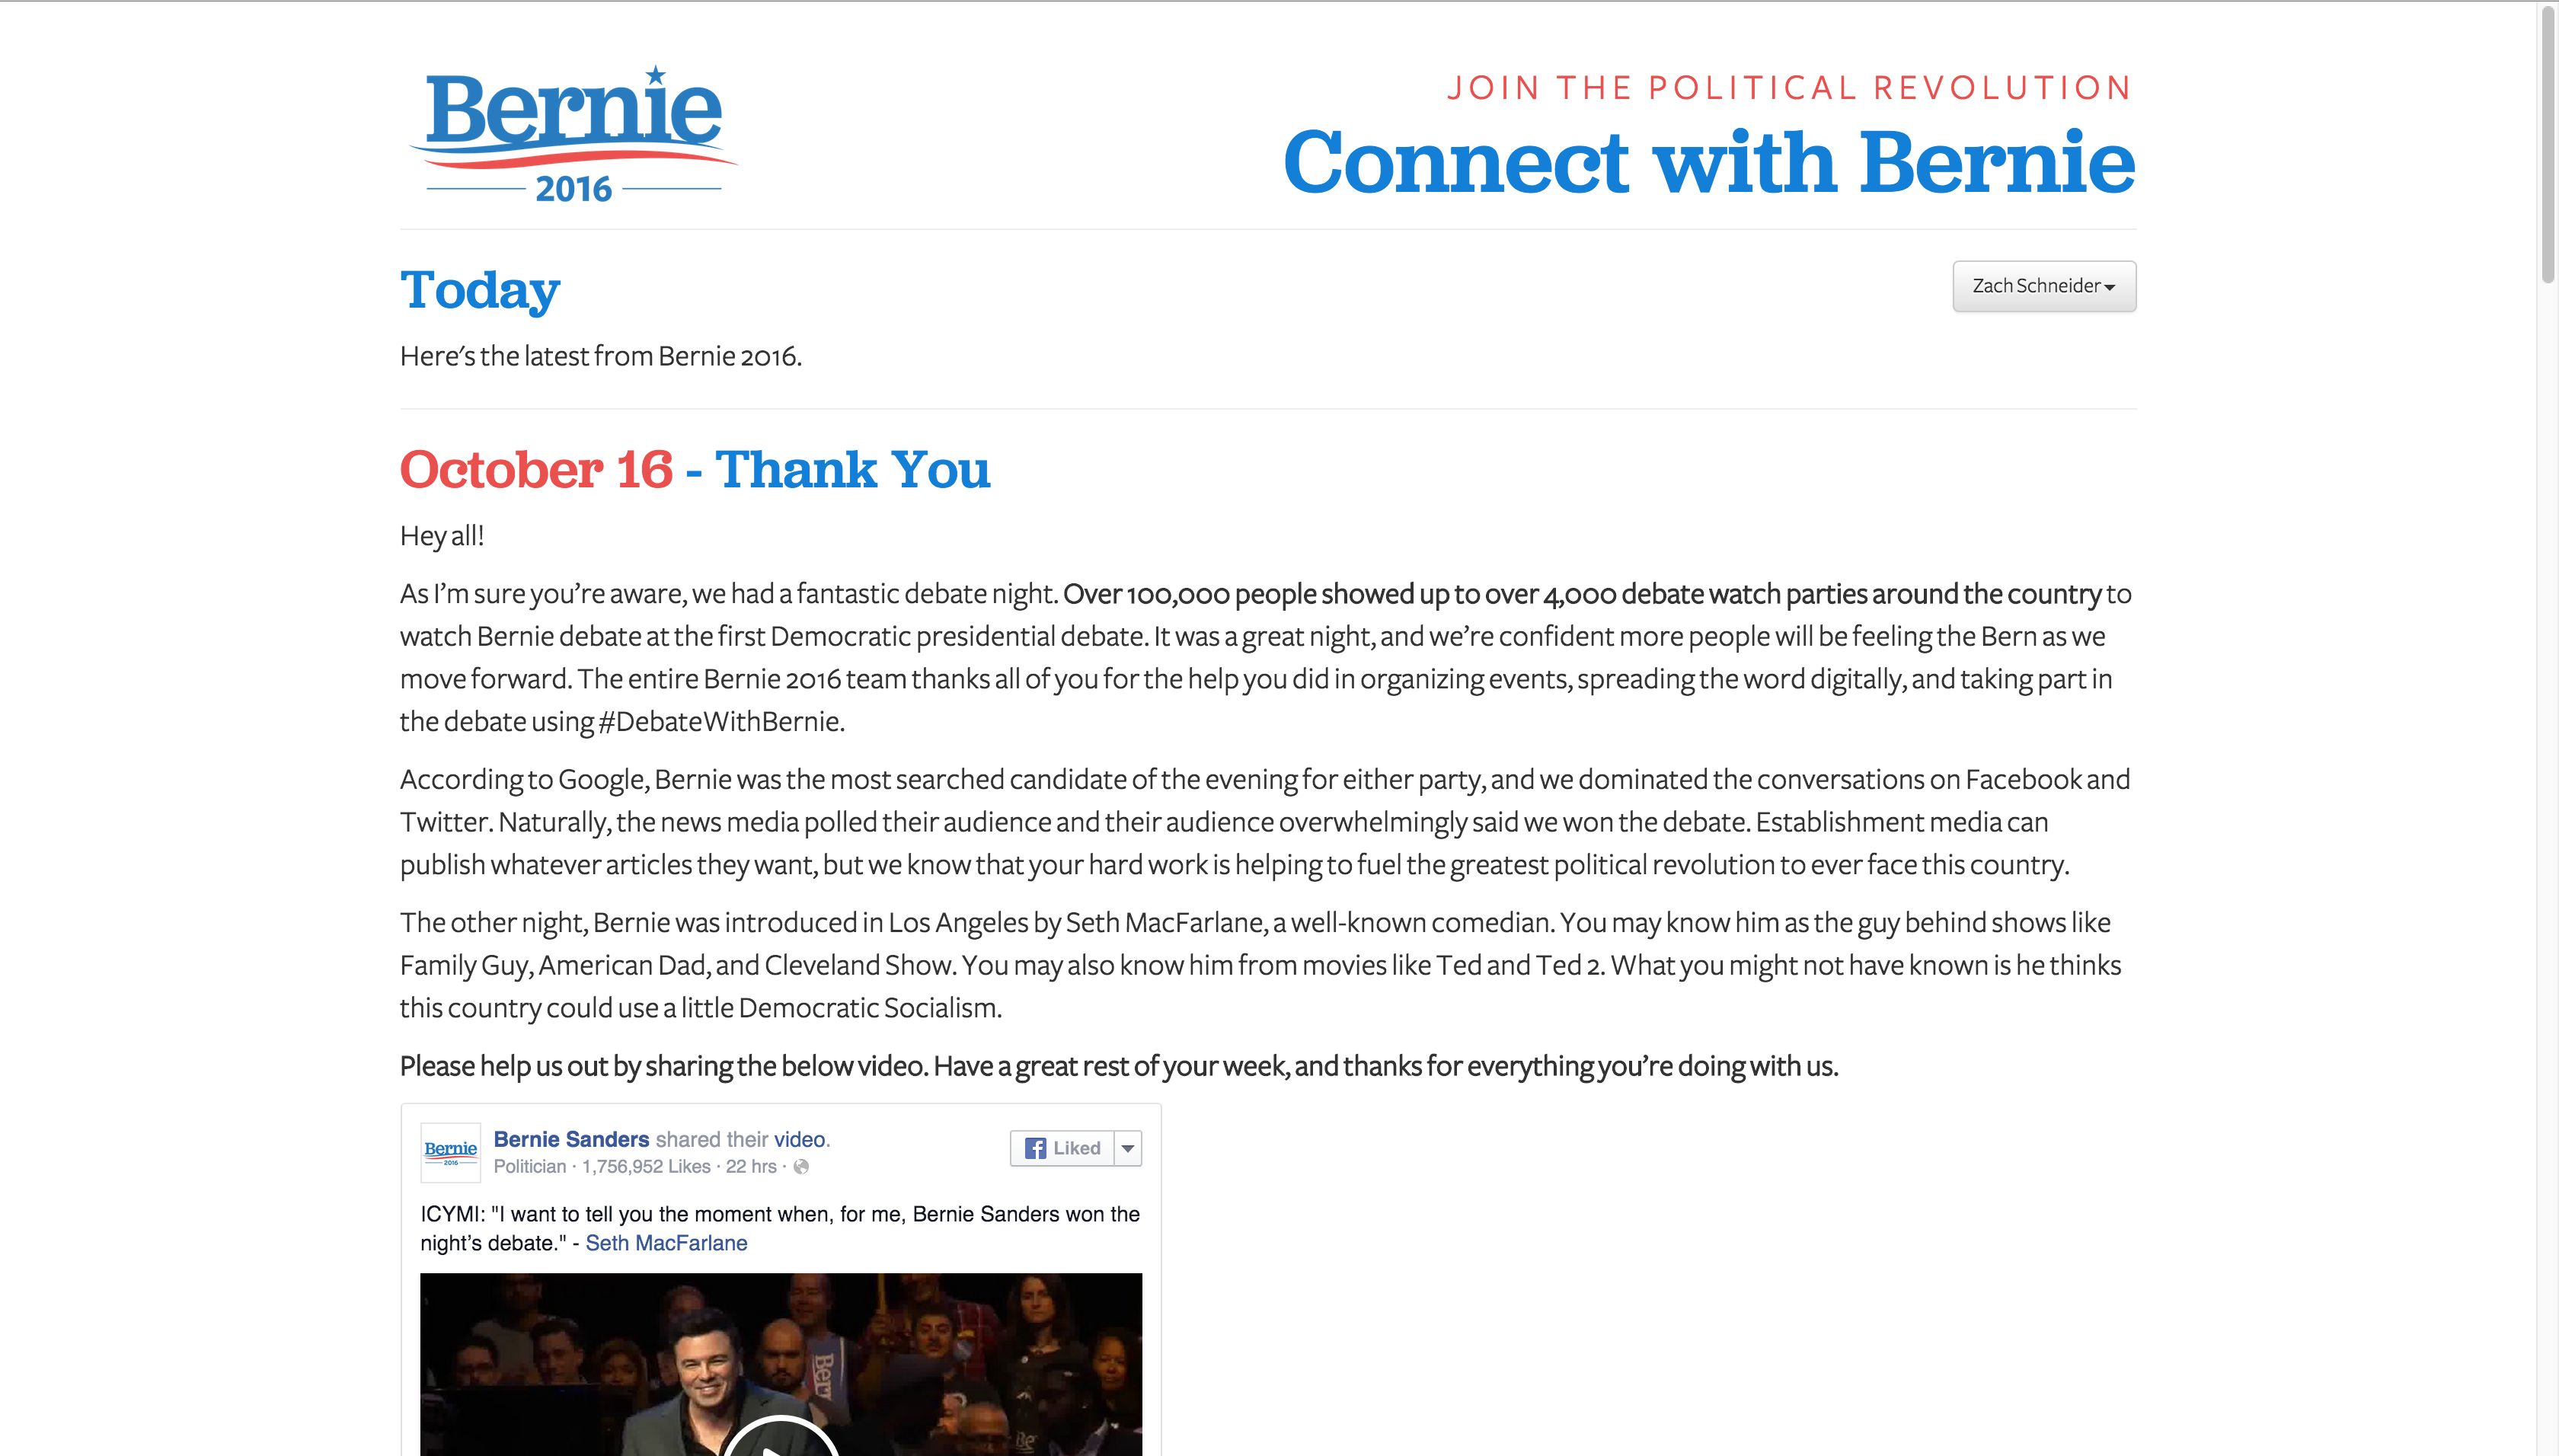 Connect with Bernie